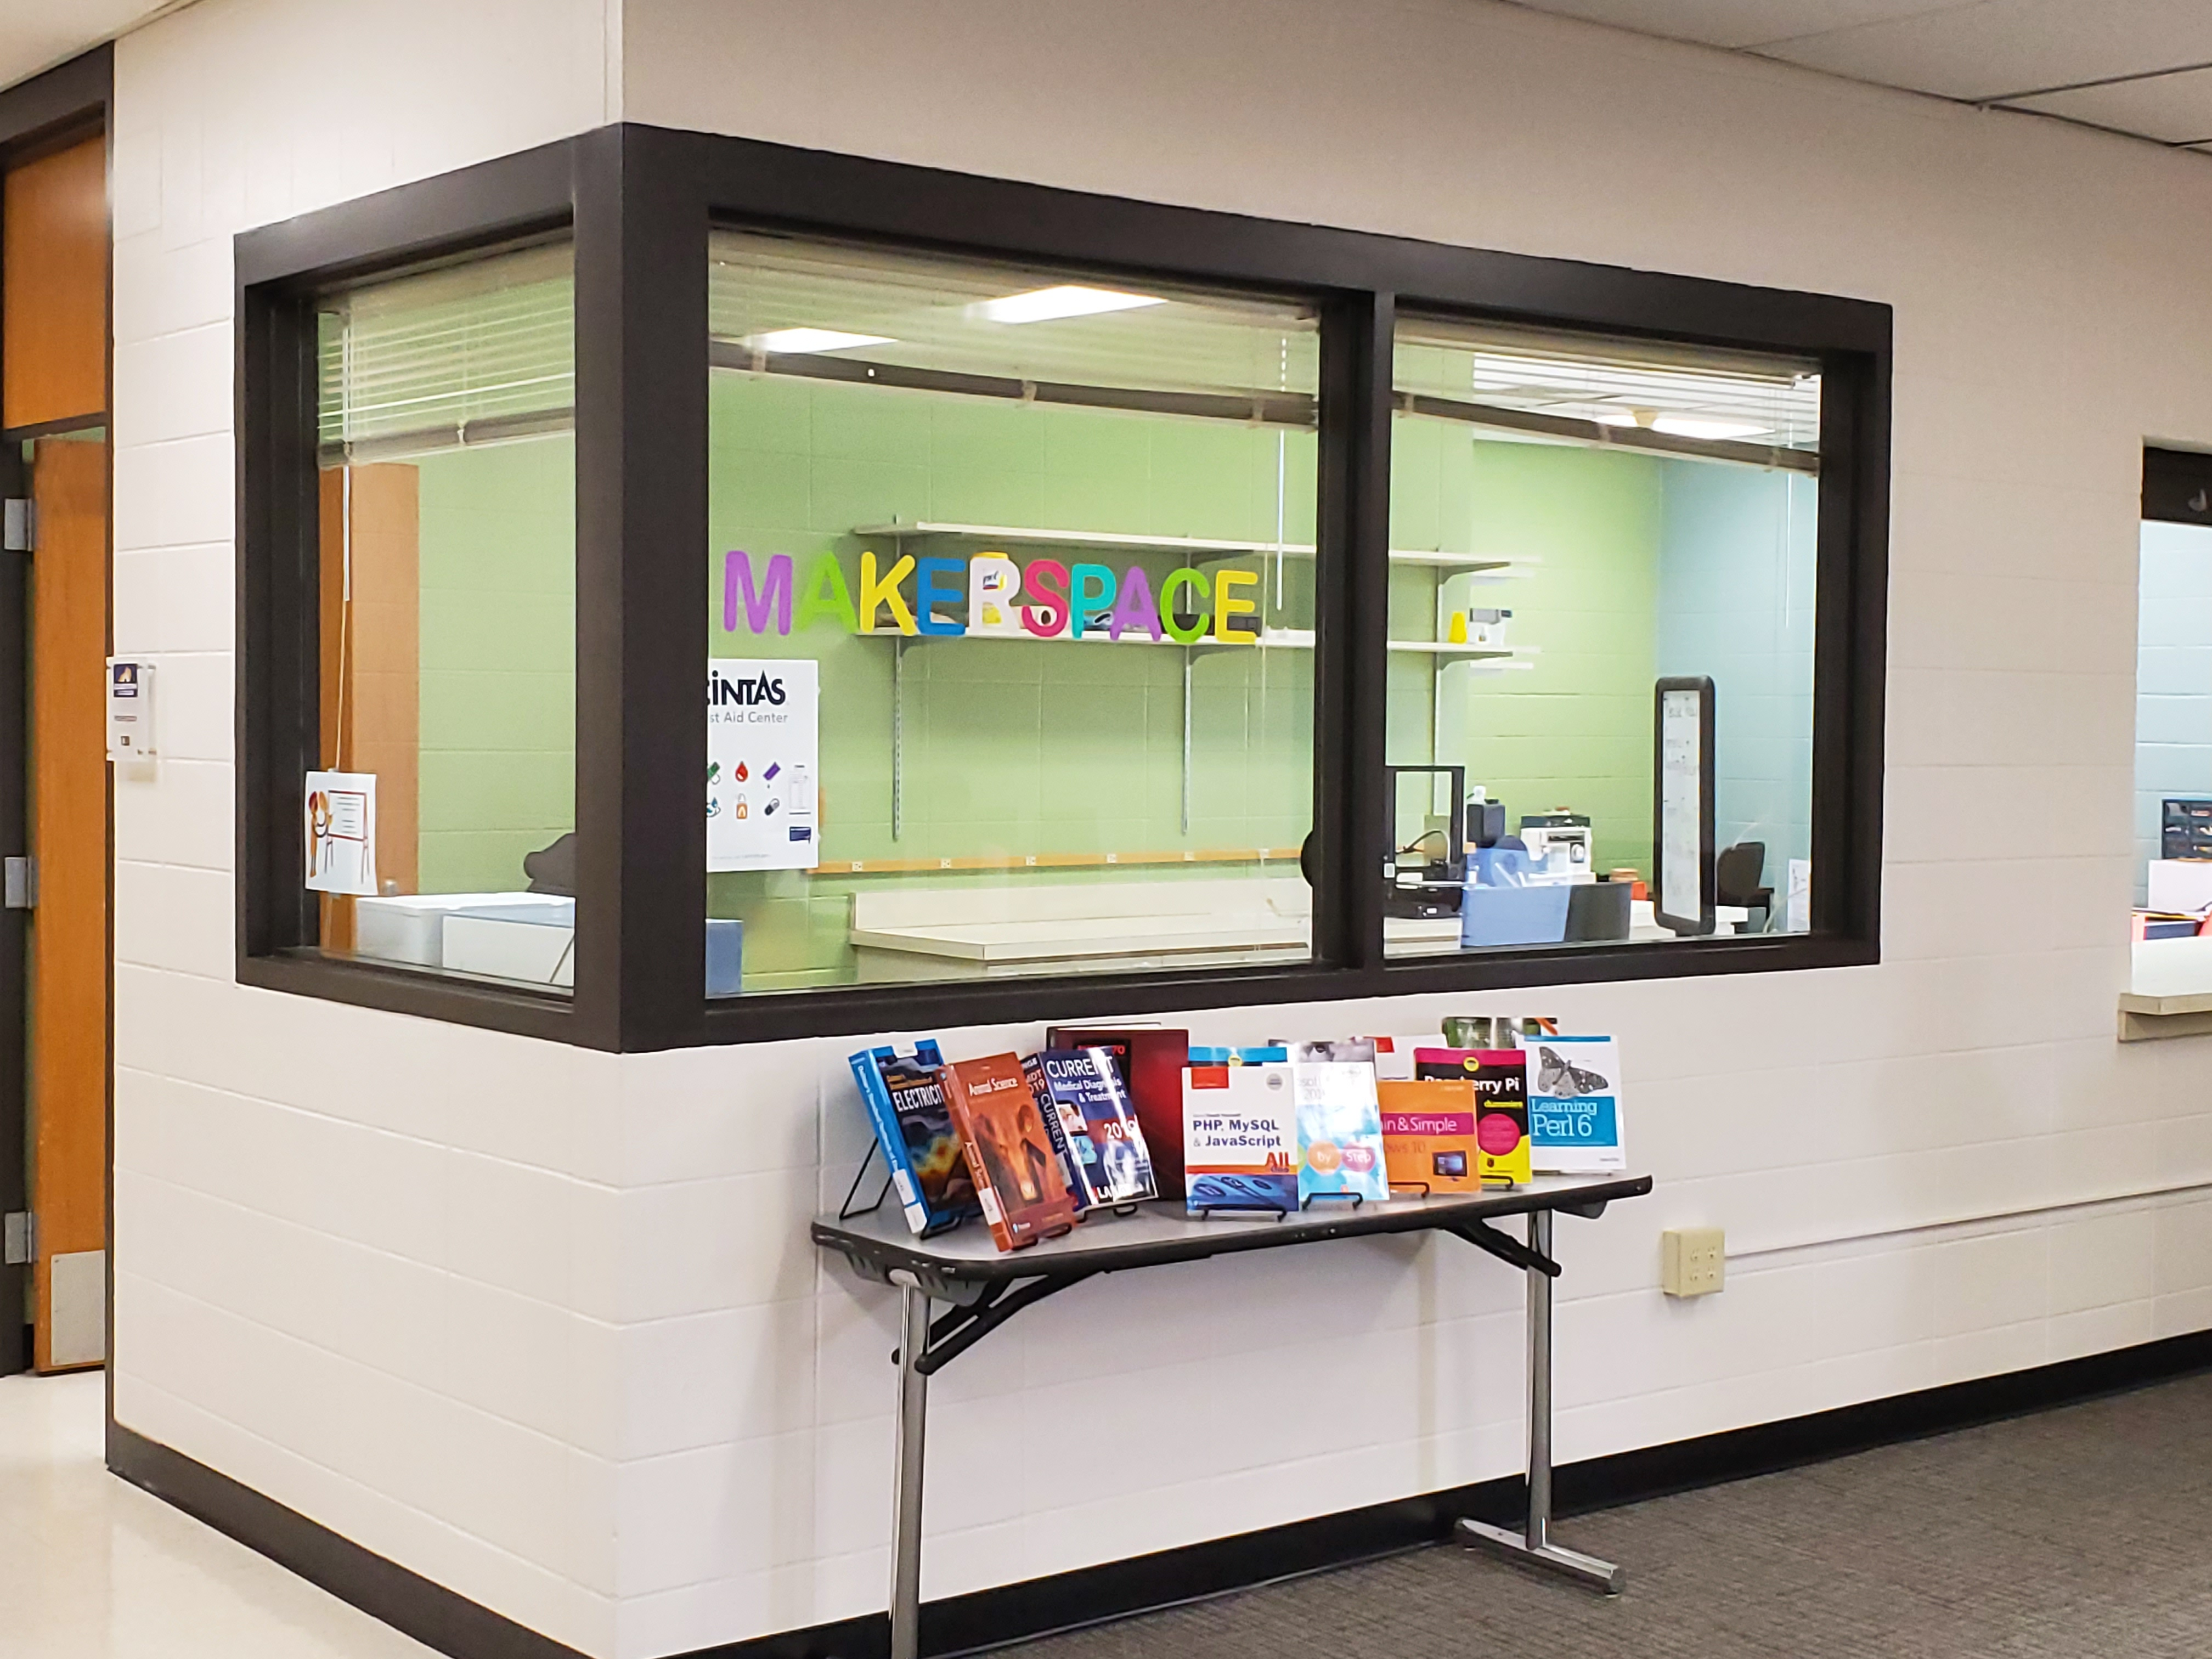 Picture of Makerspace Room